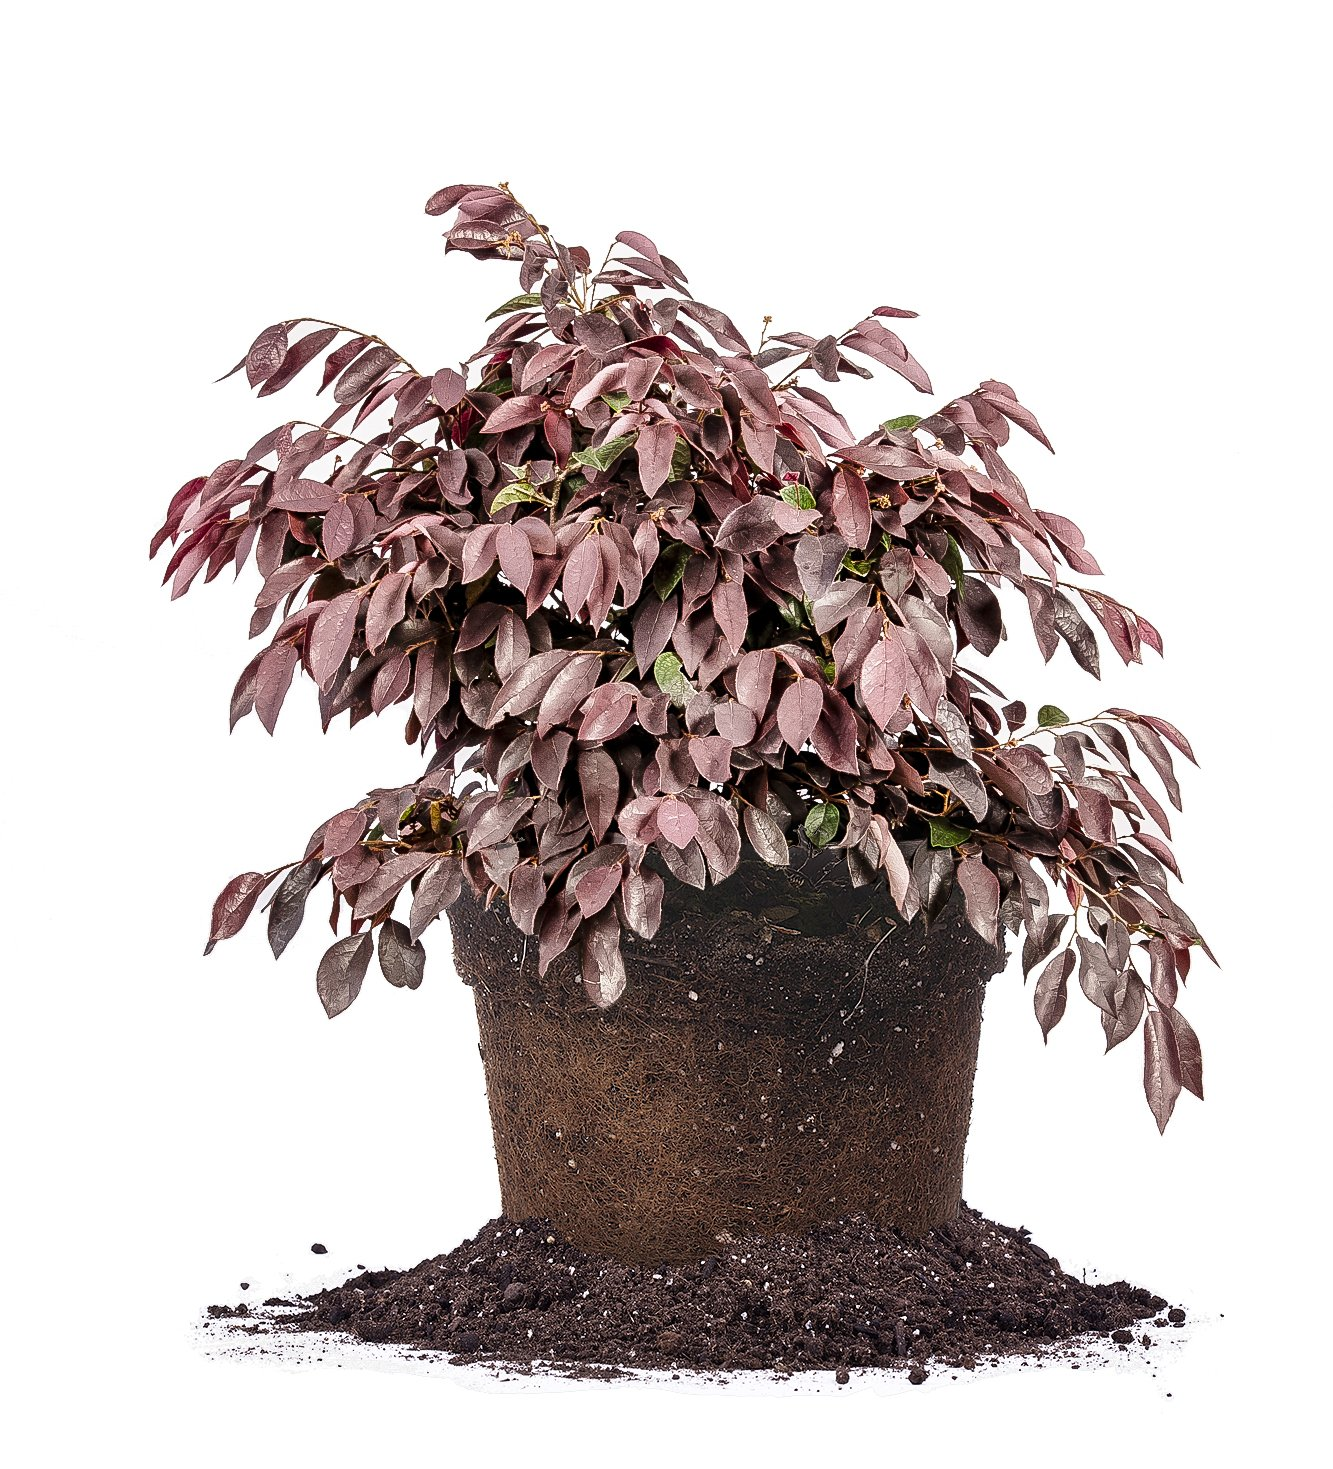 Zhuzhou LOROPETALUM - Size: 3 Gallon, Live Plant, Includes Special Blend Fertilizer & Planting Guide by PERFECT PLANTS